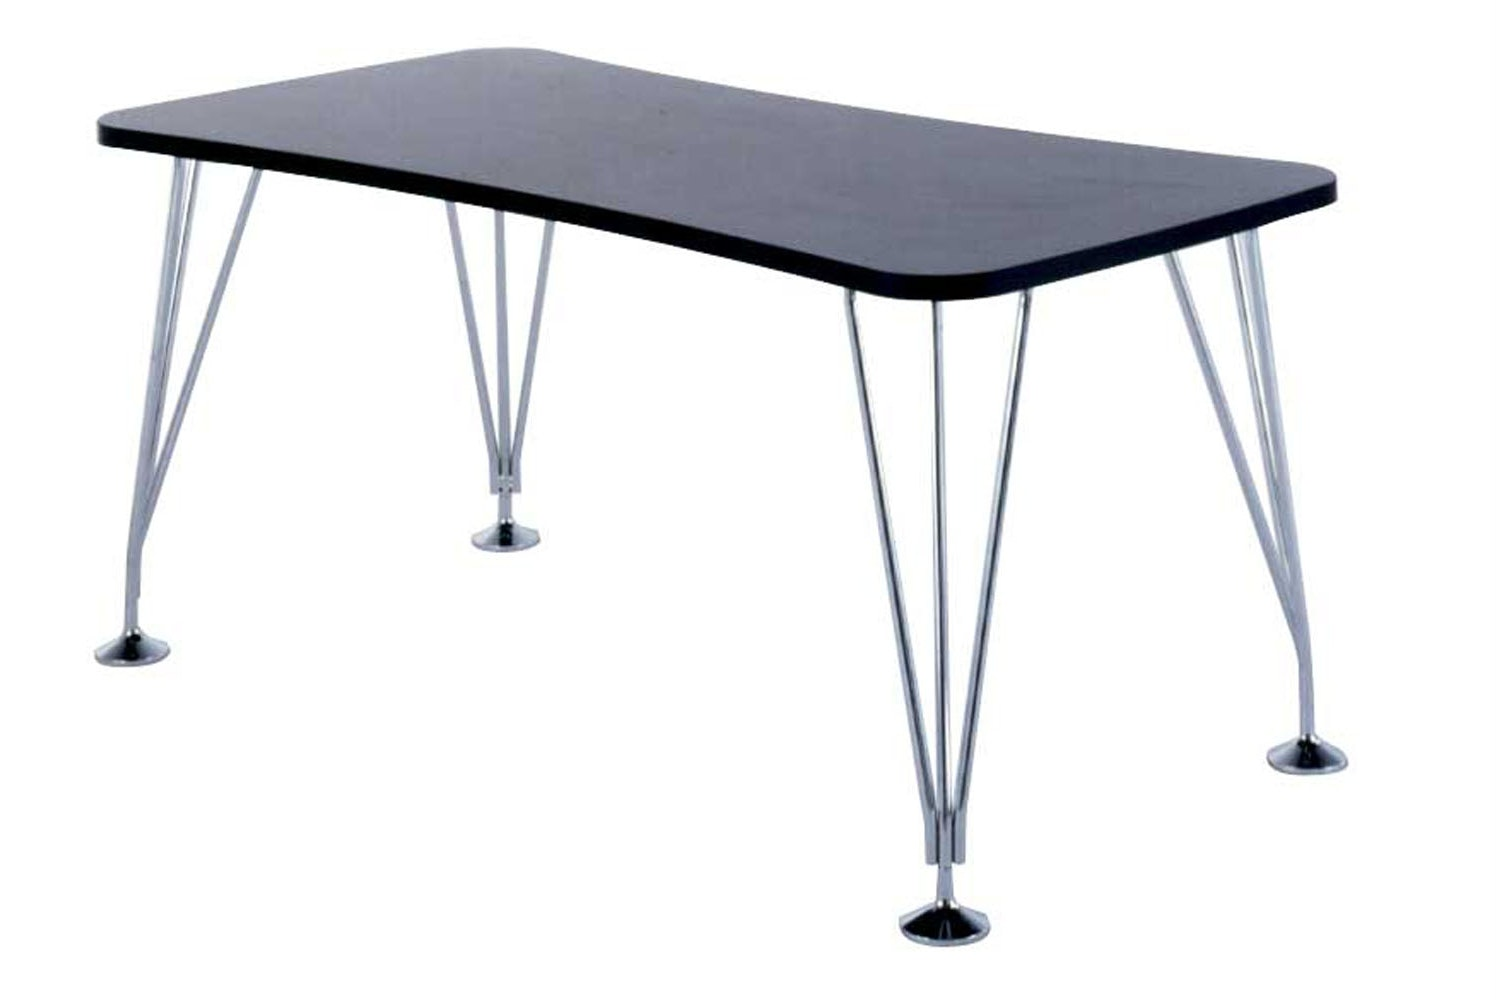 Max Table by Ferruccio Laviani for Kartell